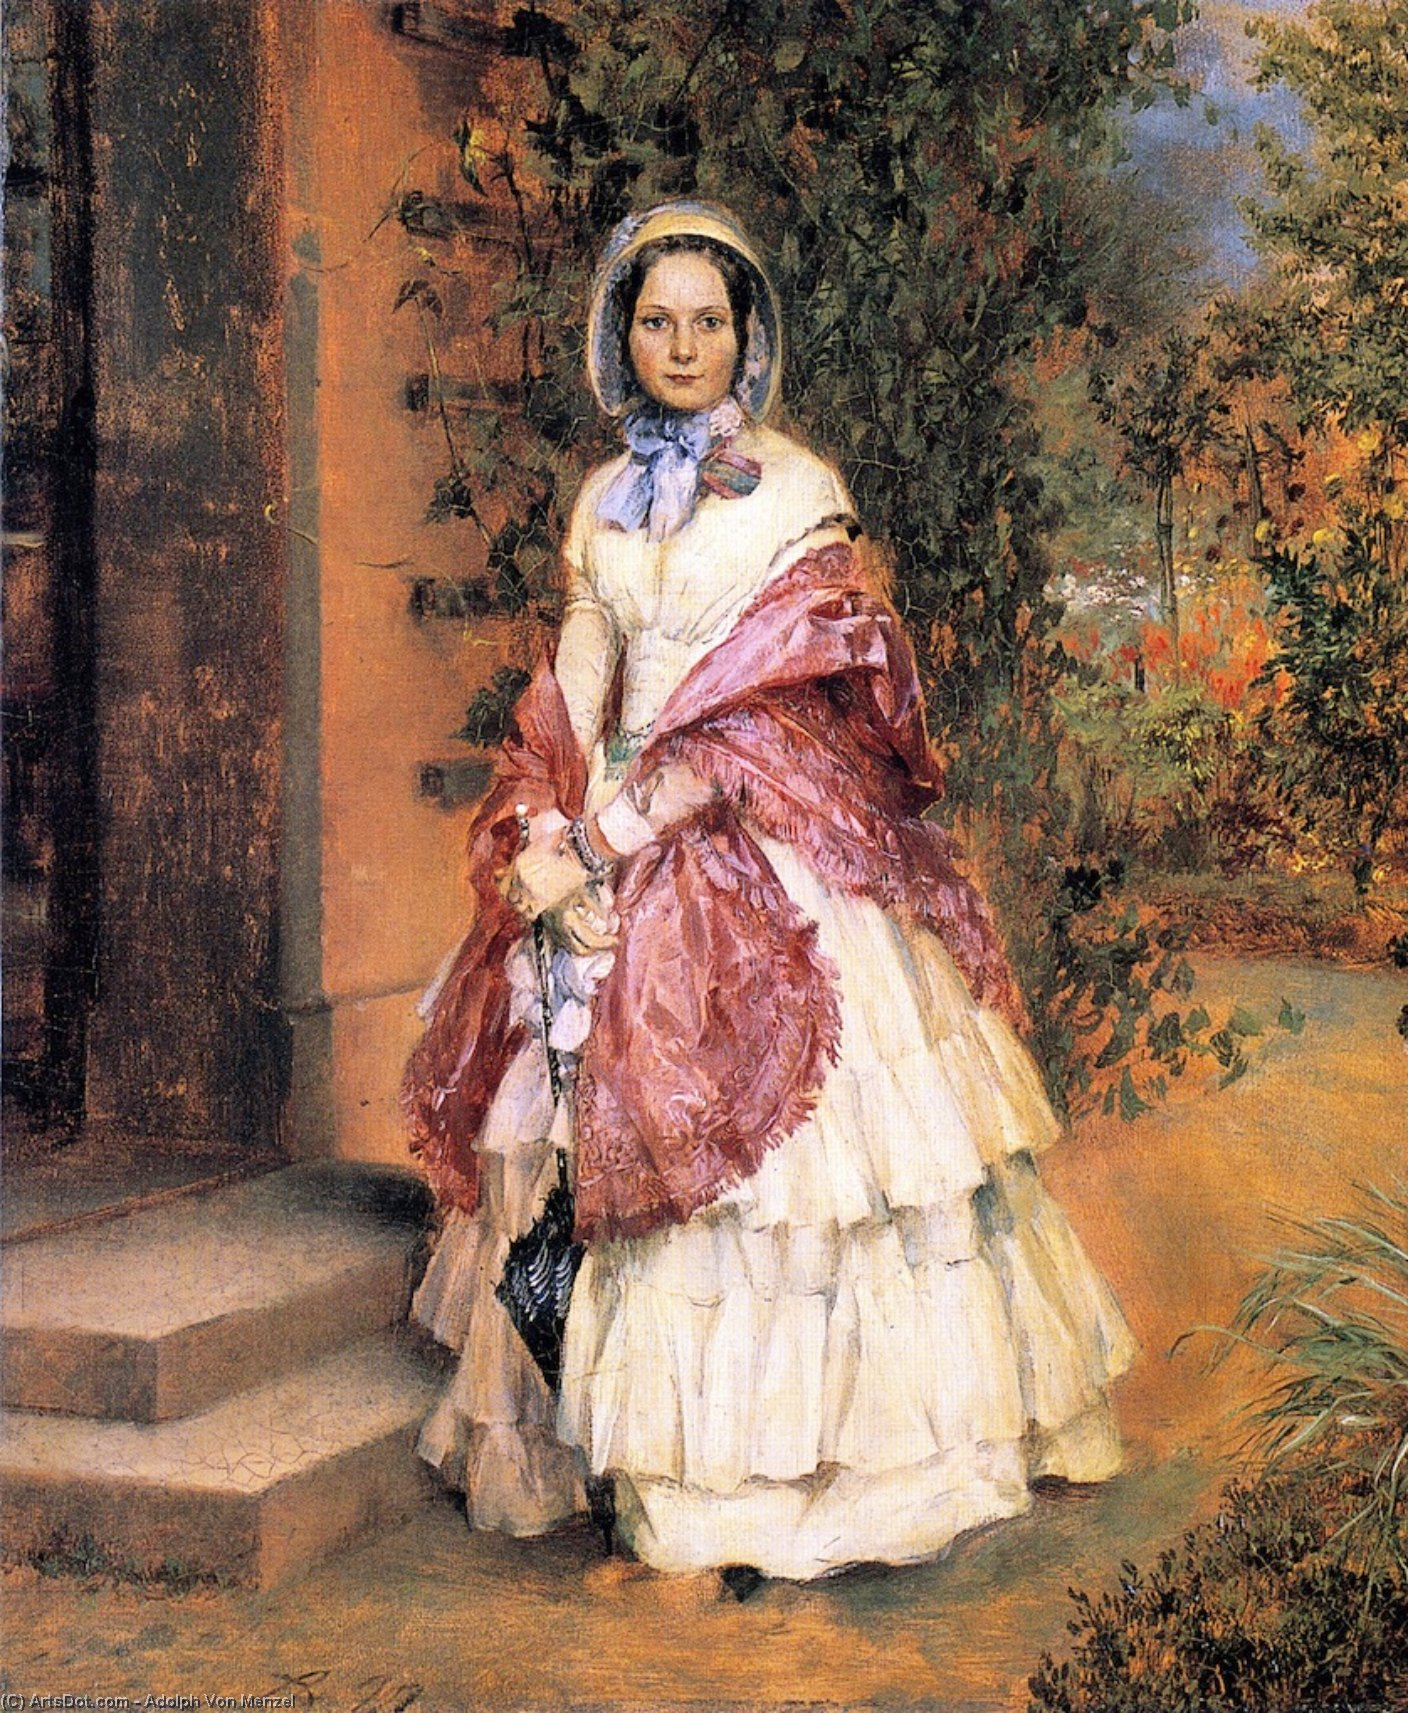 Clara Ilger, later Frau Schmidt von Knobelsdorf, Oil On Canvas by Adolph Menzel (1815-1905, Poland)